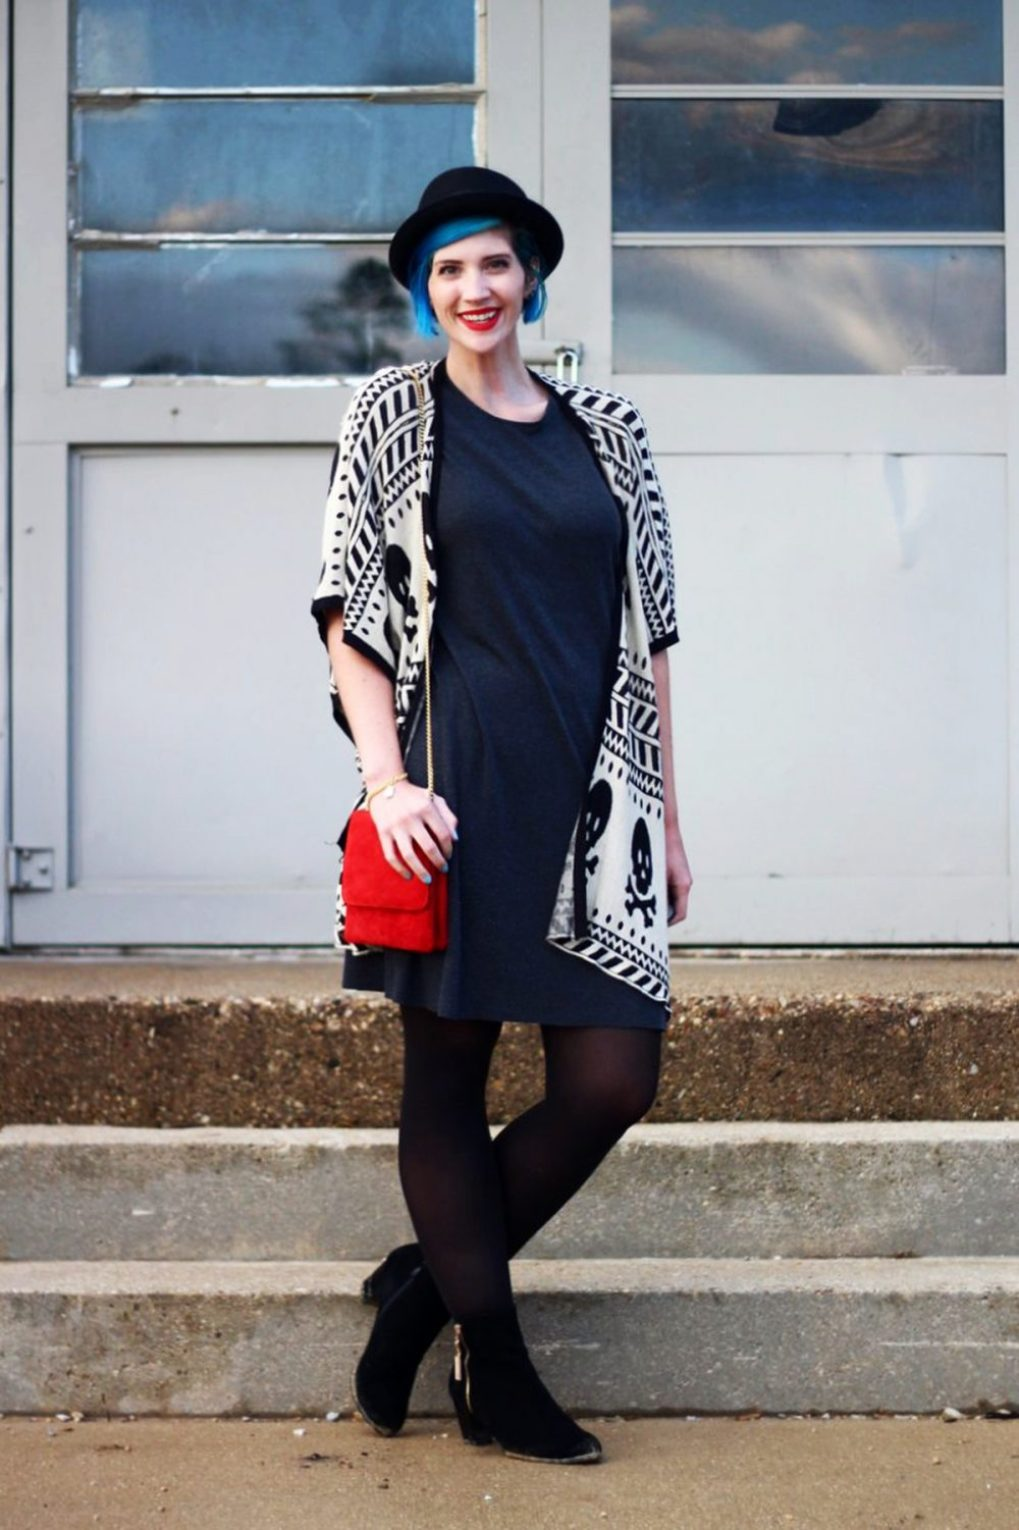 Outfit: Wearing a cardigan with a skull pattern, thrifted gray t-shirt dress, red purse, red lipstick, blue hair, black pork pie hat, black tights, black booties